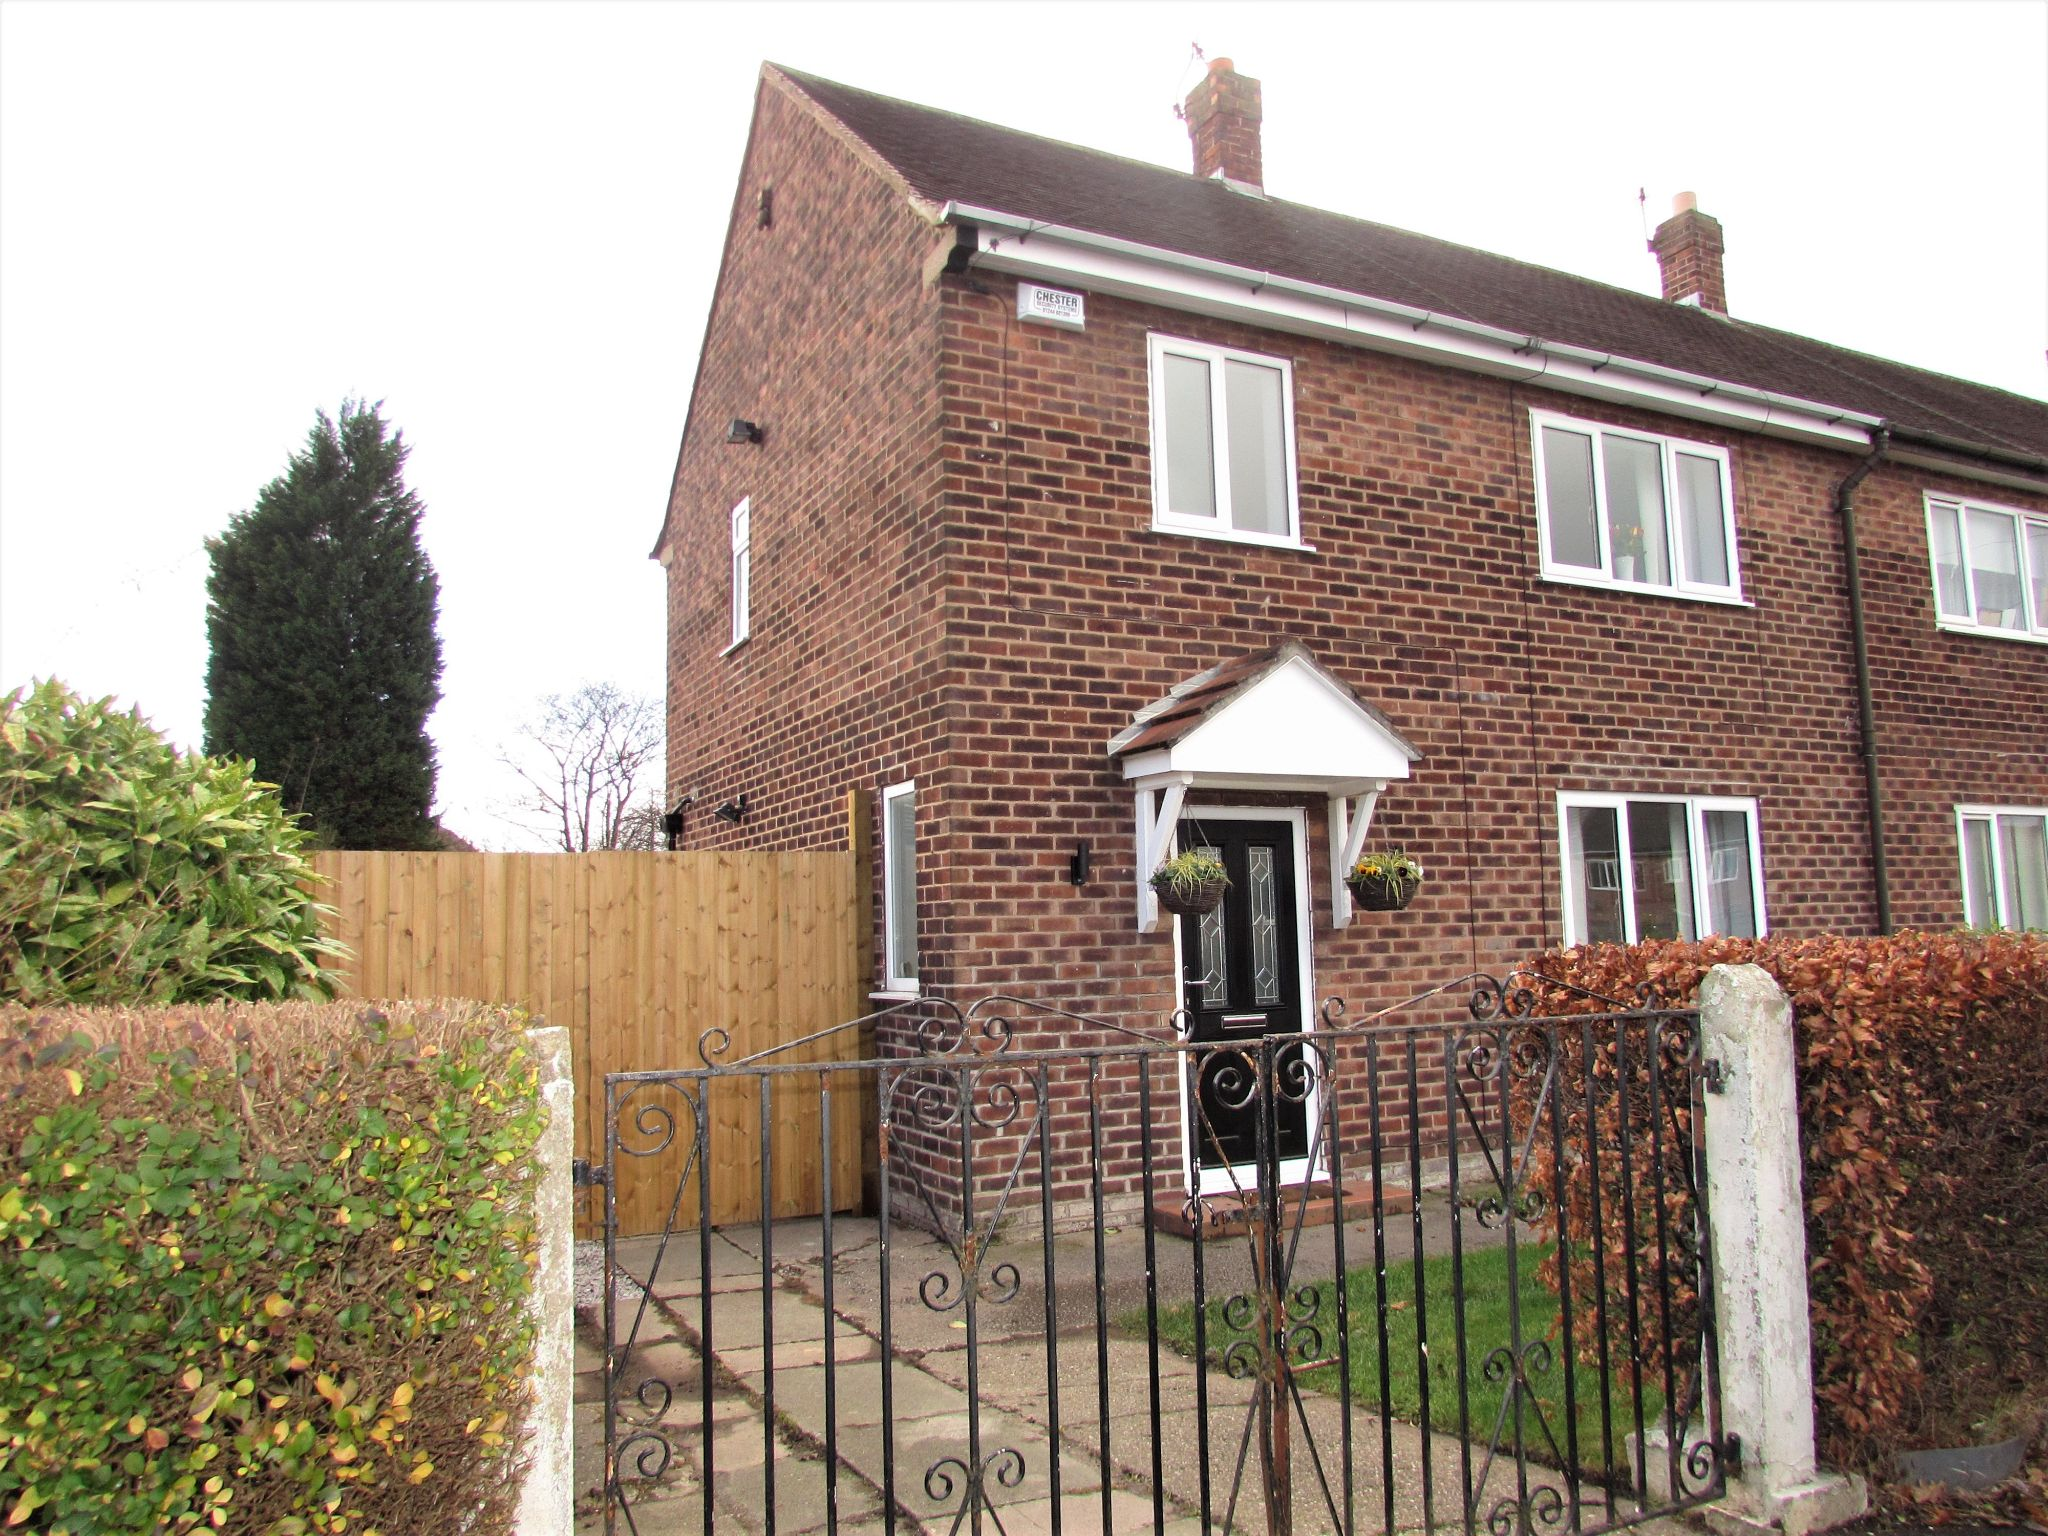 3 Bedroom End Terraced House For Sale - Photograph 21